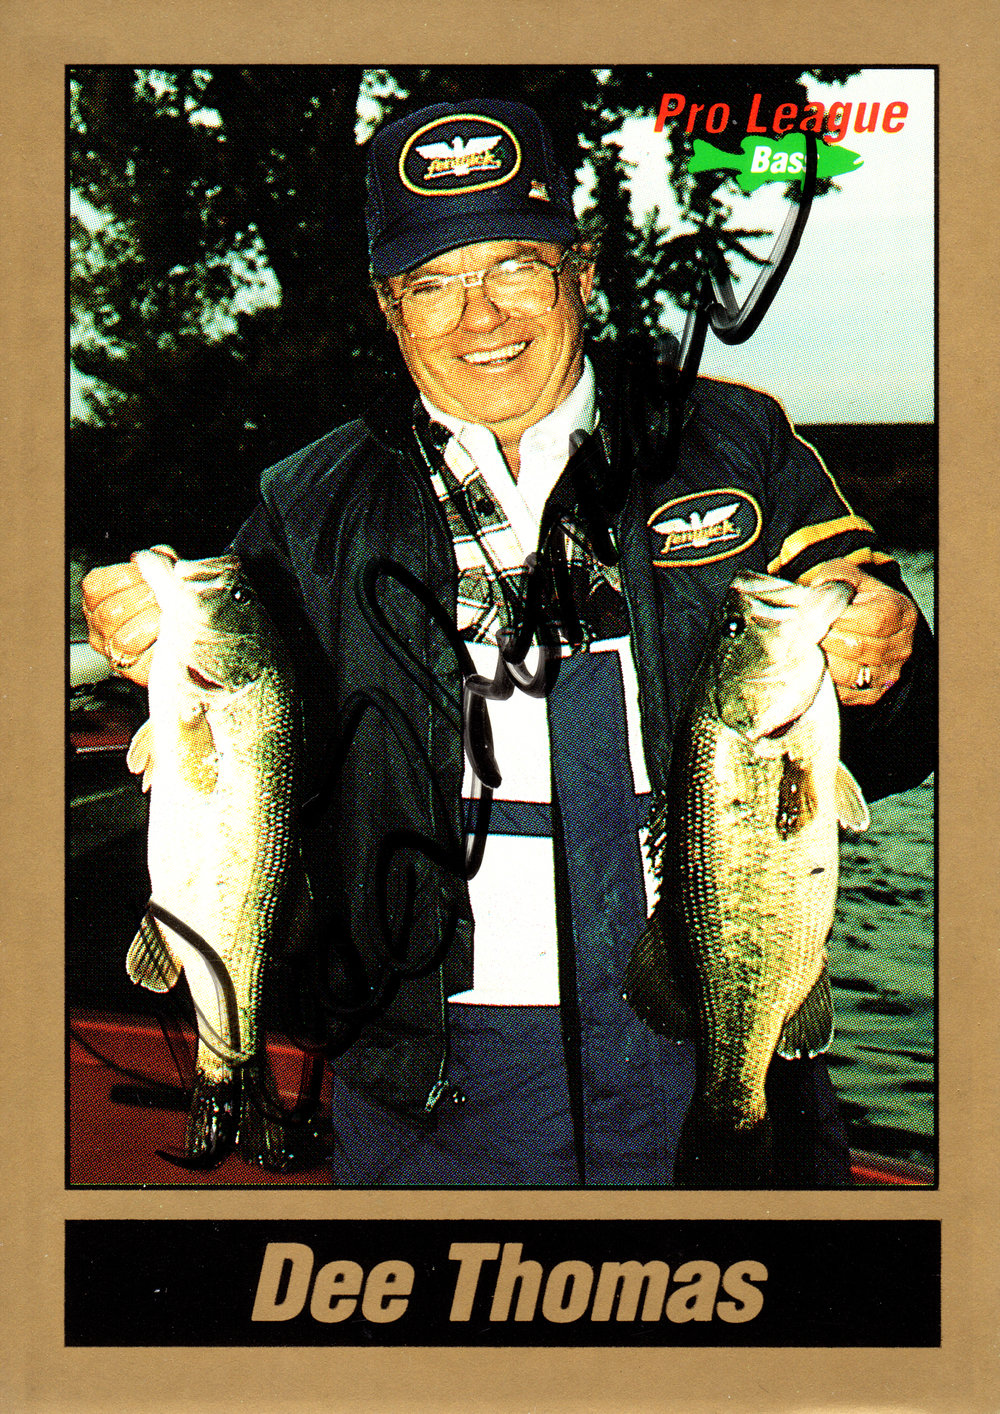 1991 Pro League Bass Trading Card